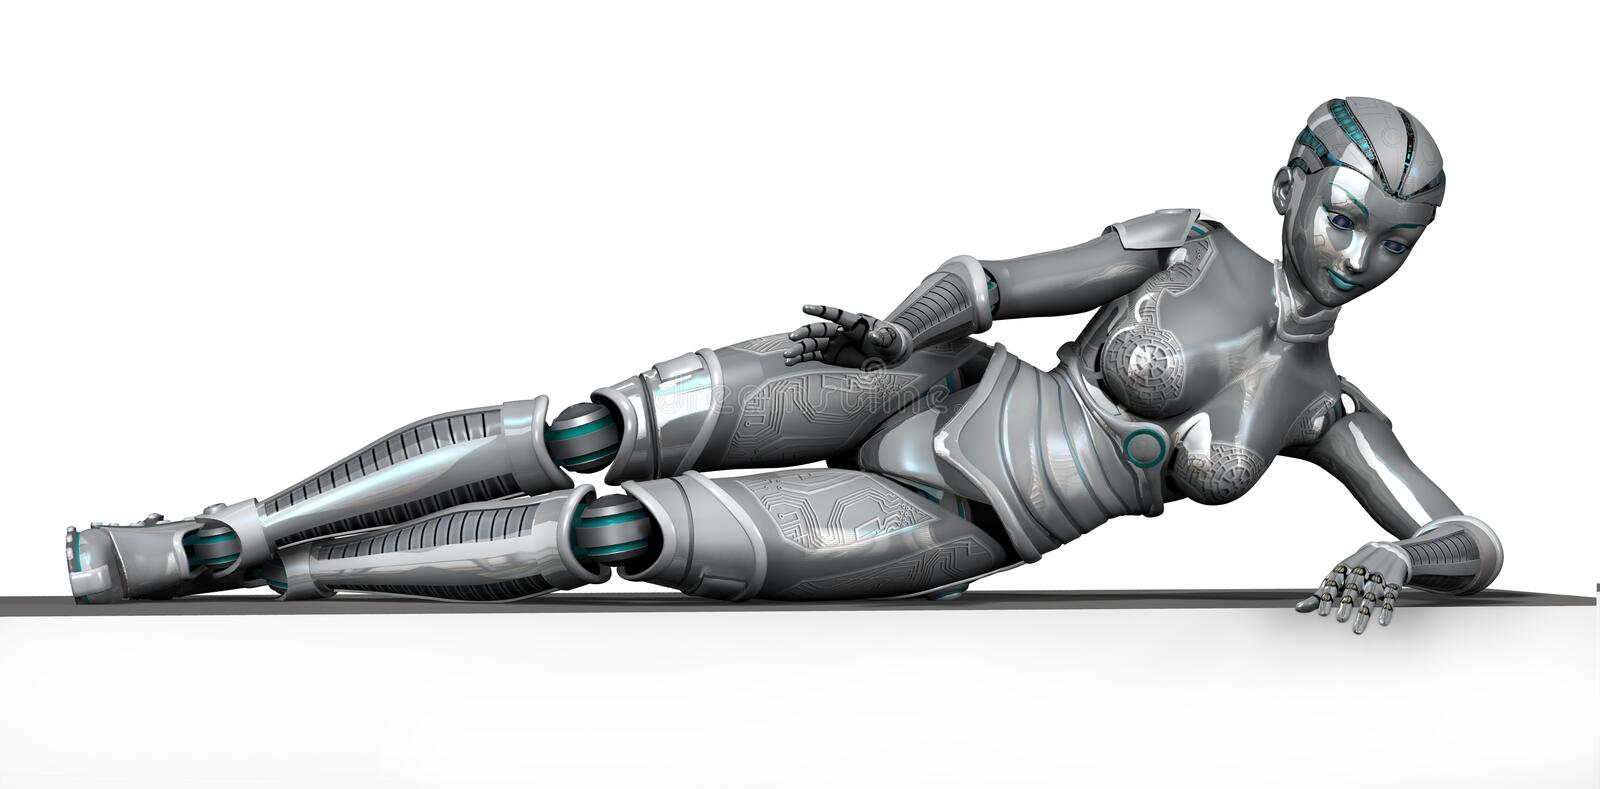 Robot Laying on Frame Edge - with clipping path vector illustration